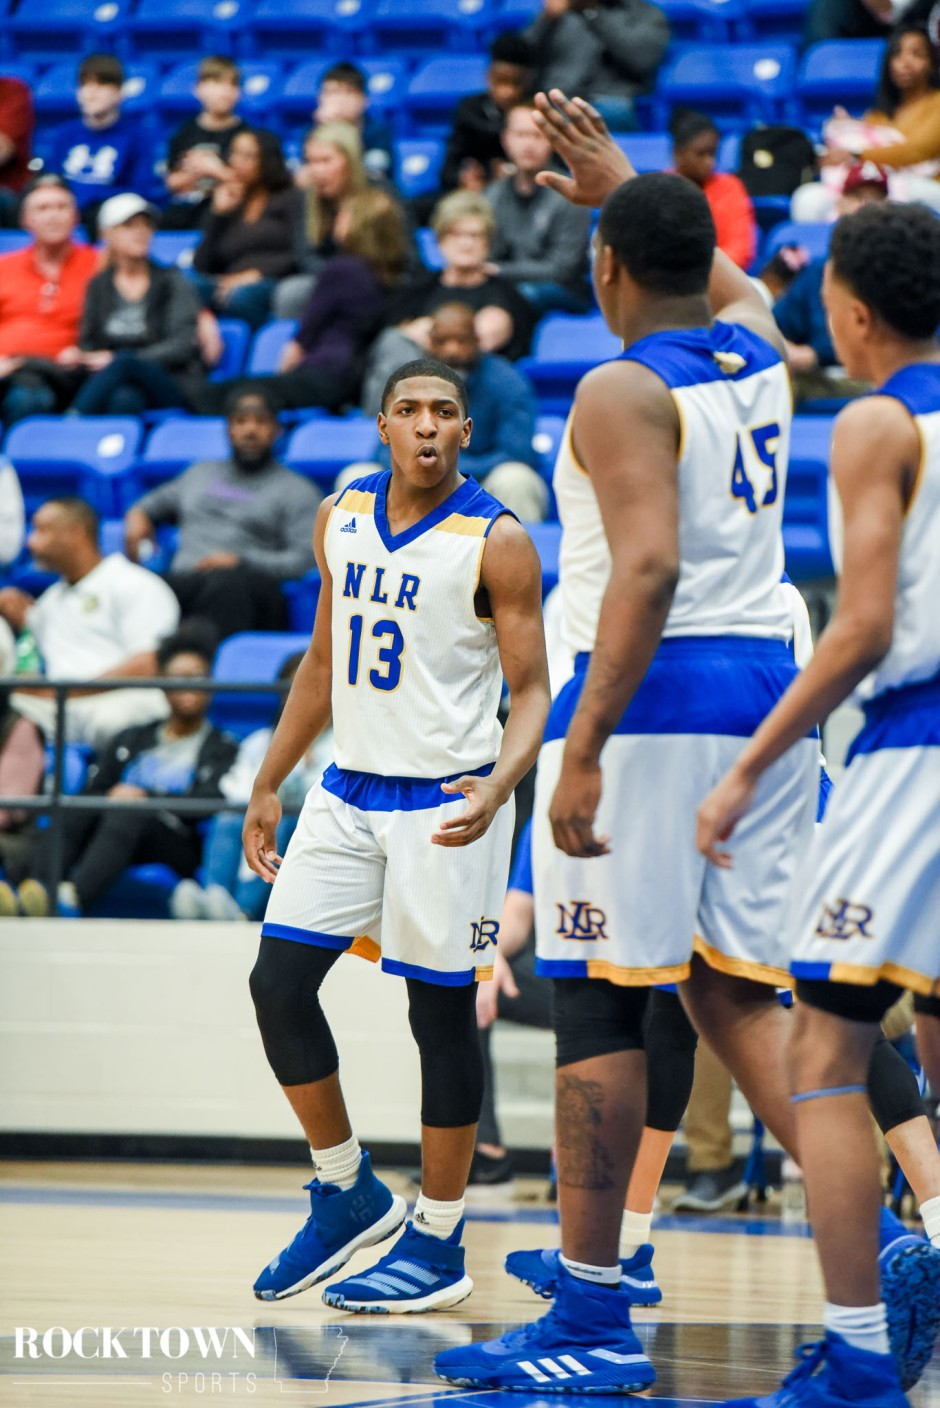 NLR_conway_bball_2020(i)-51